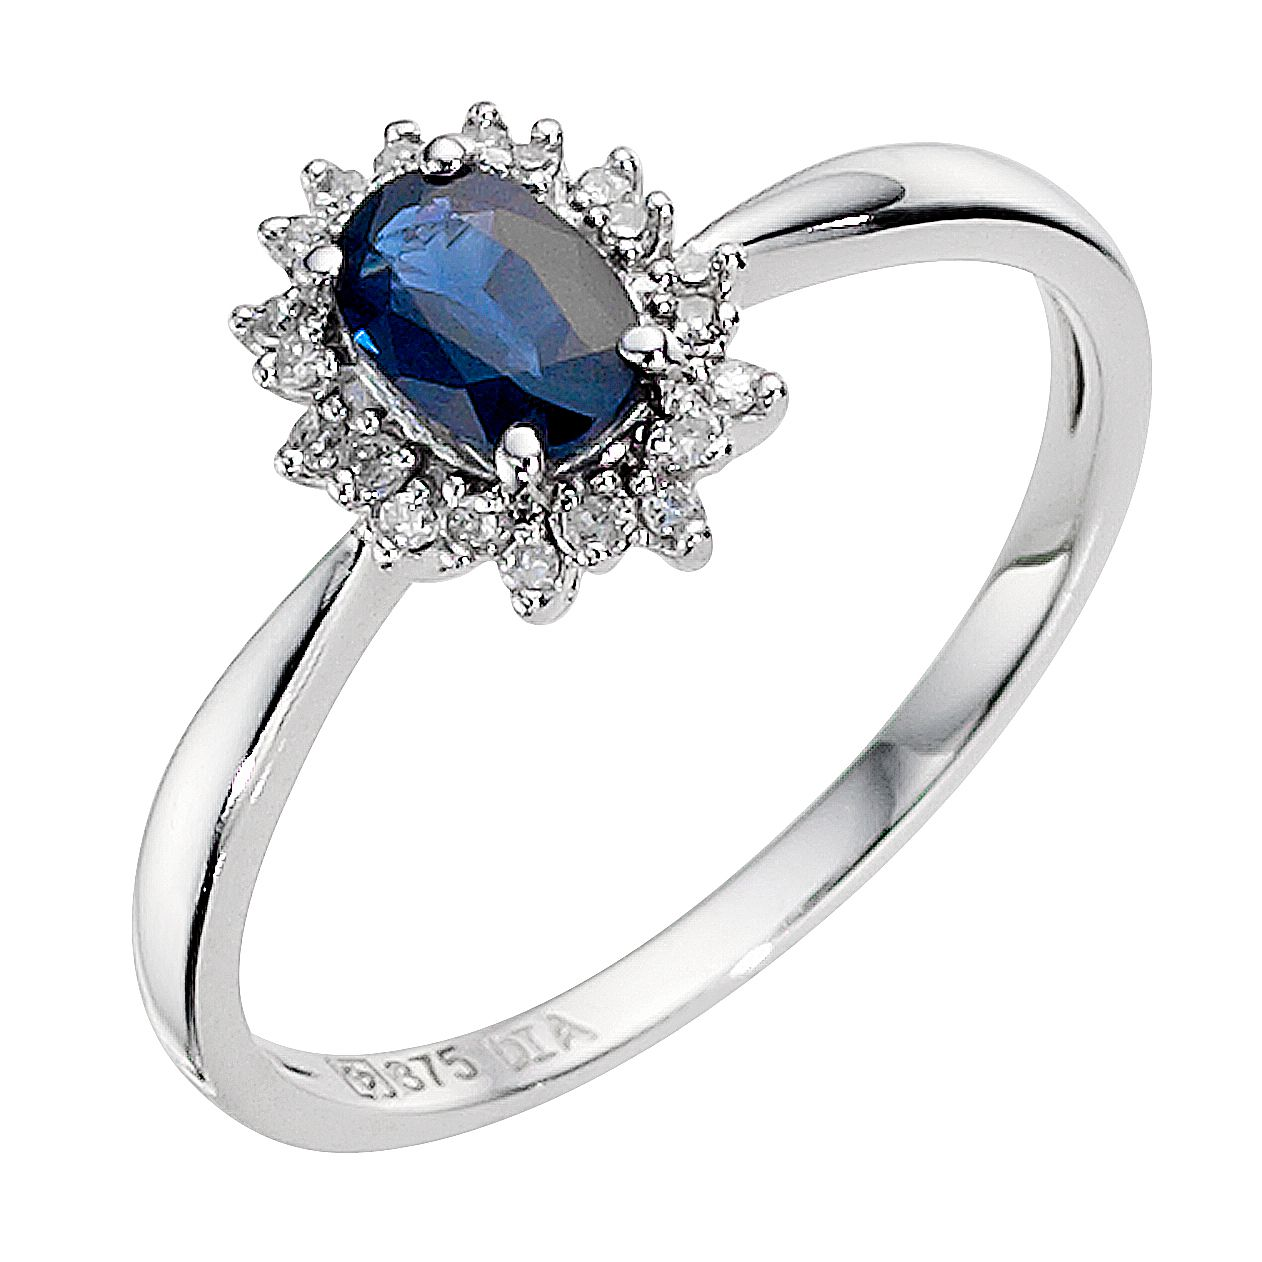 engagement image rings modern sapphire product diamond blue ring